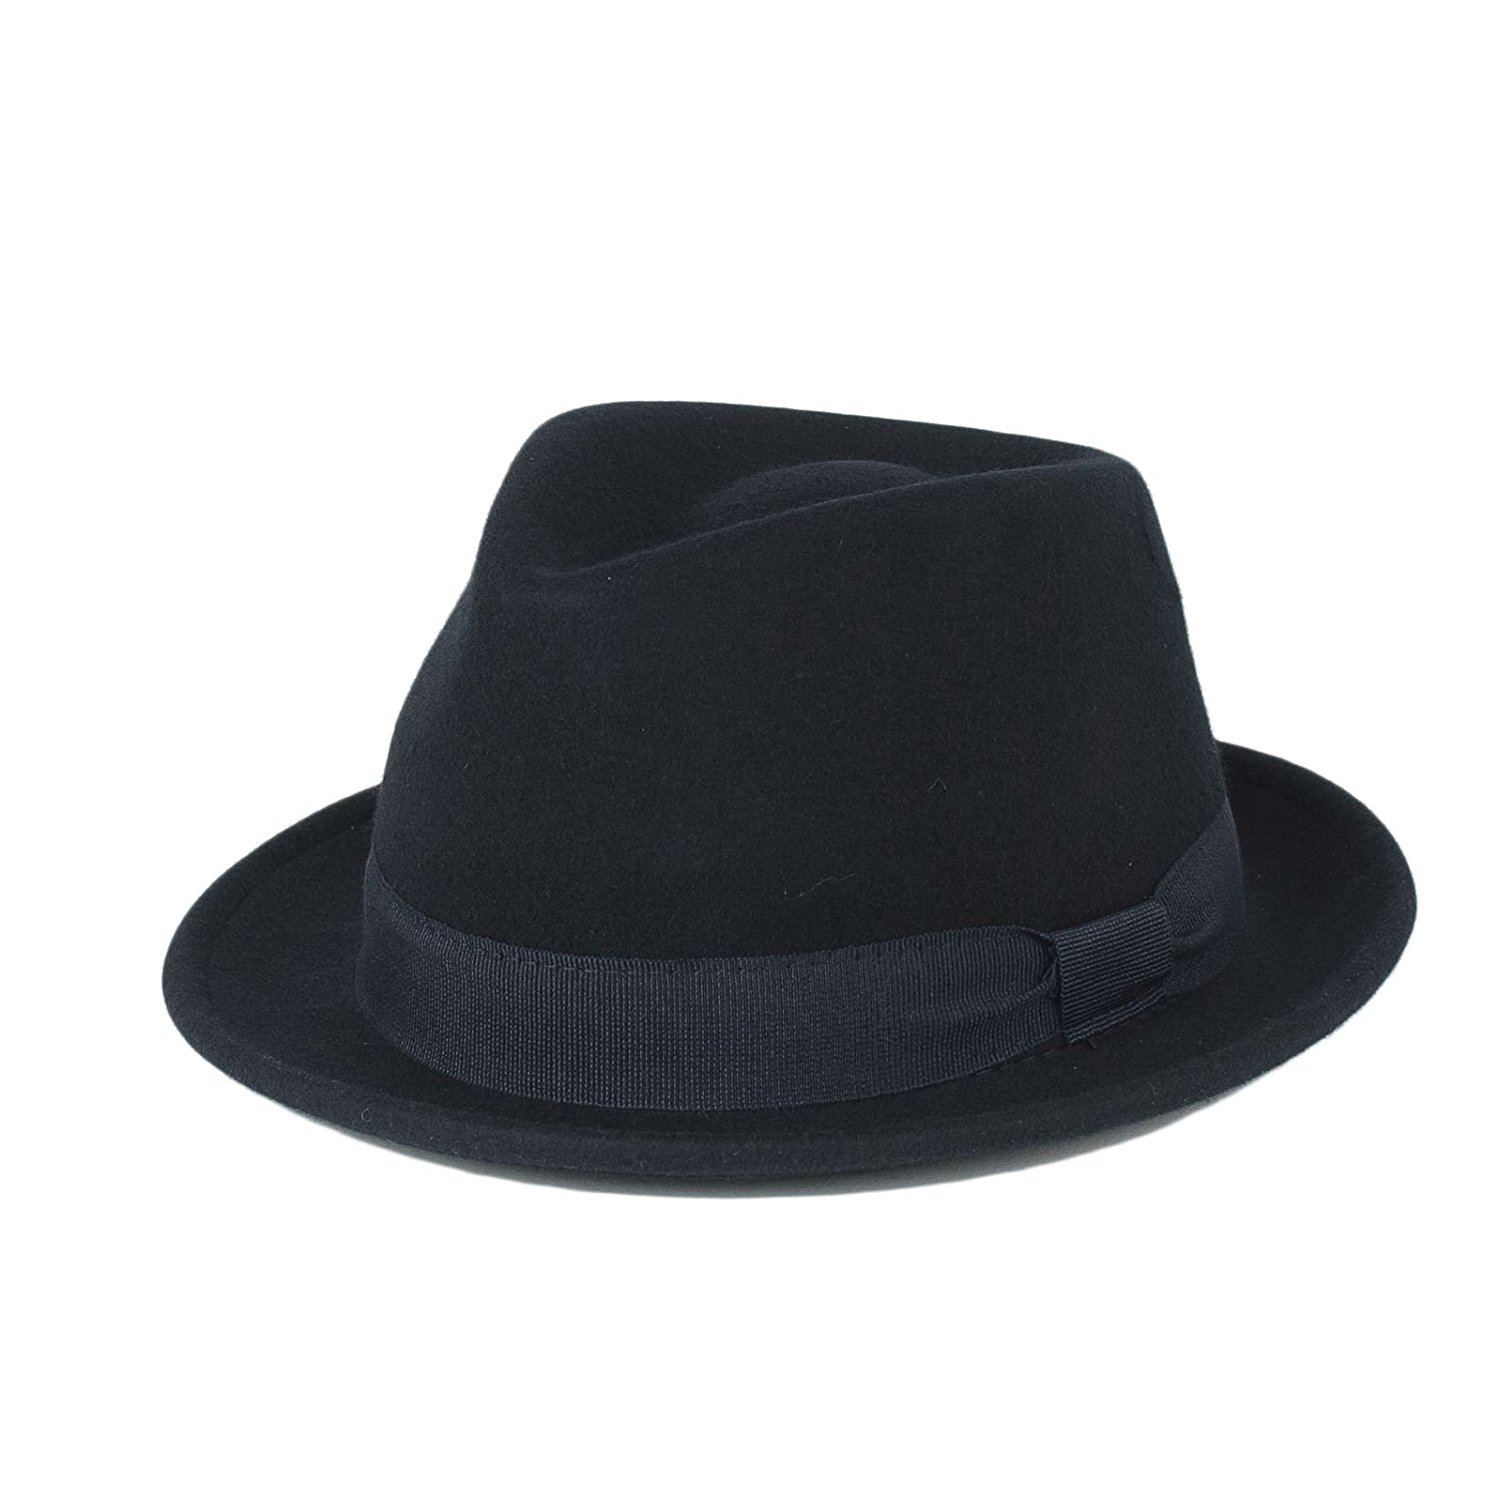 d06c738a3637a Mens Ladies Unisex 100% Wool Plain Waterproof   Crushable Fedora Trilby Hat  - Navy Blue (59 L)  Amazon.co.uk  Clothing